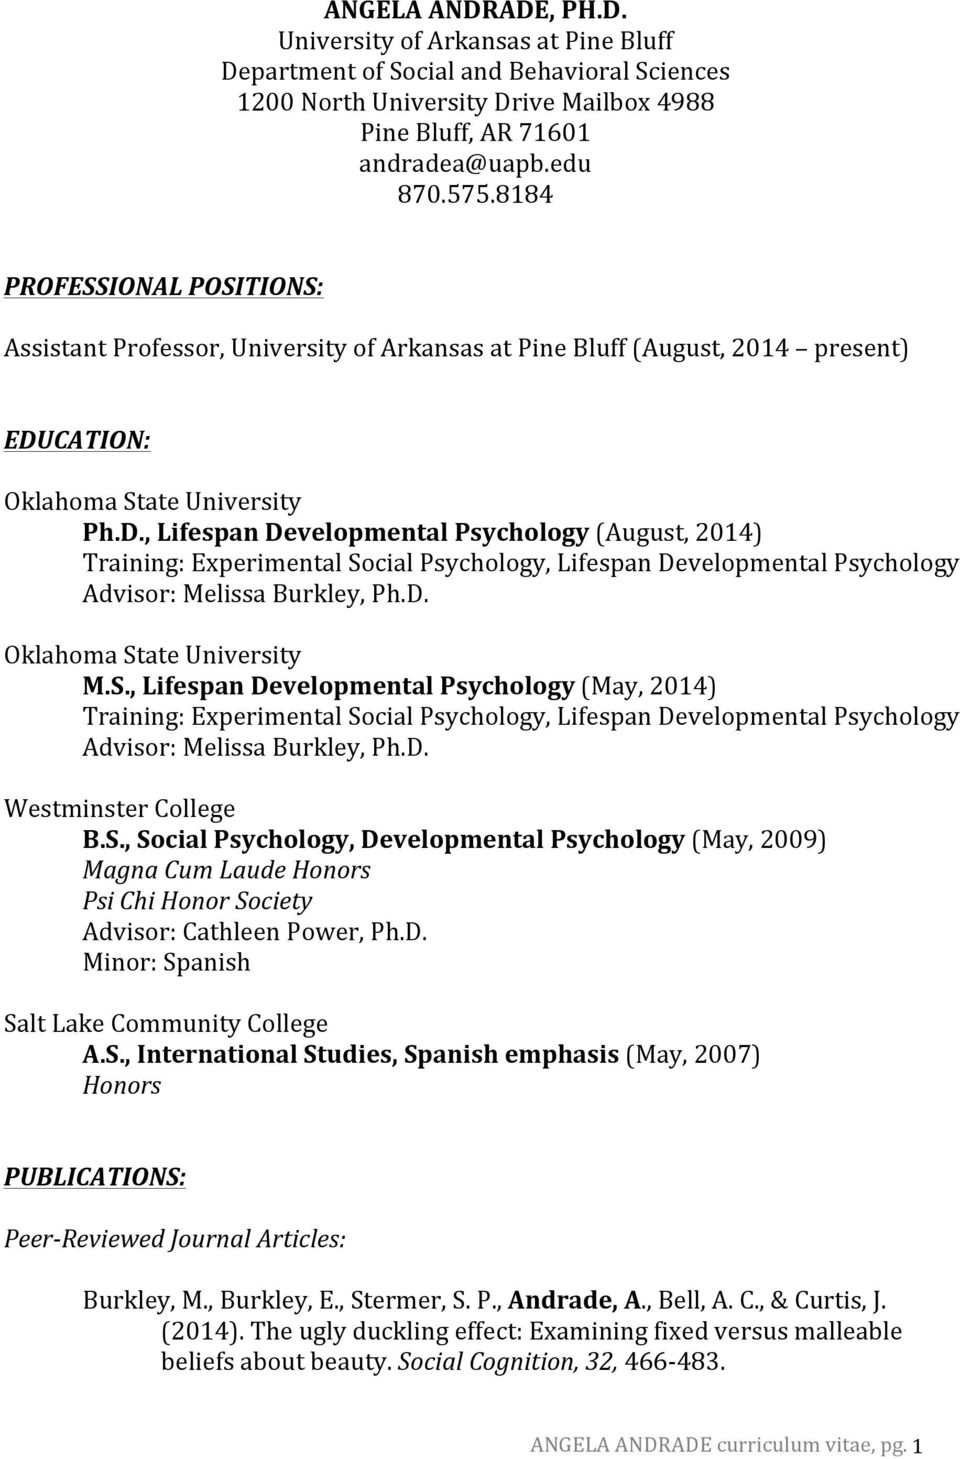 CATION: Ph.D., Lifespan Developmental Psychology (August, 2014) Training: Experimental So